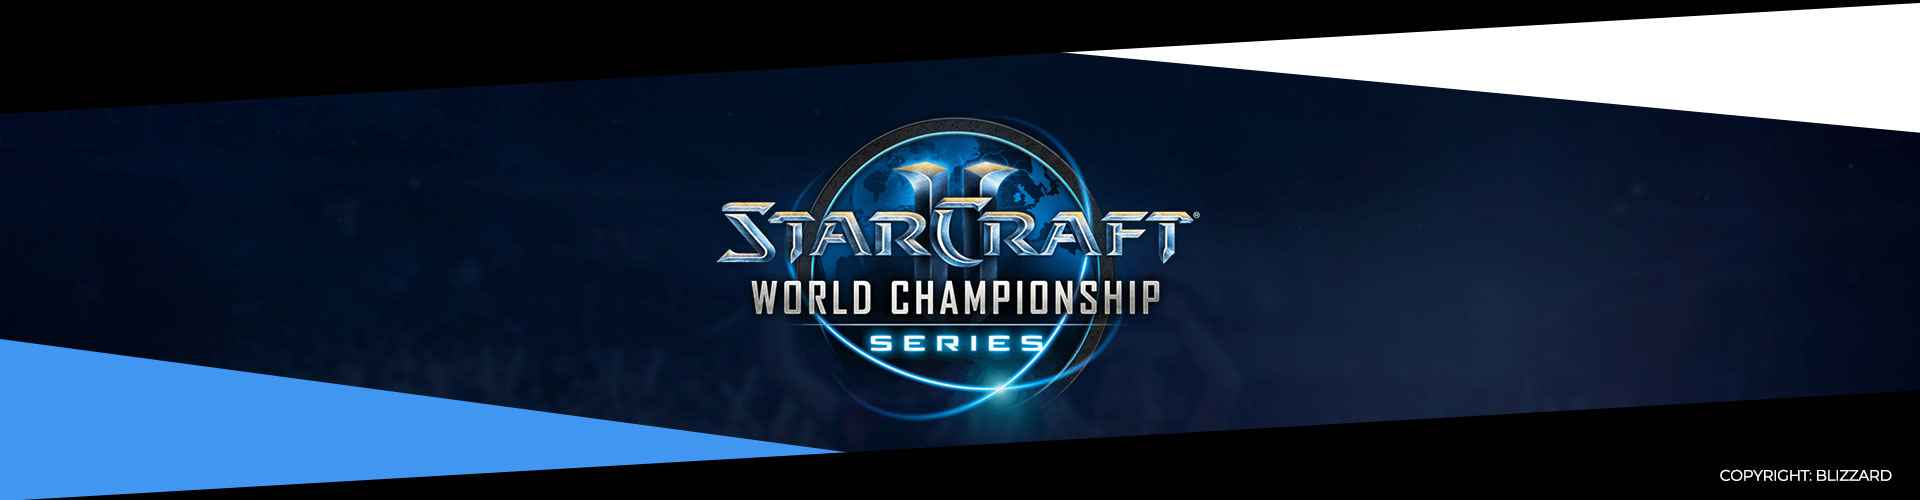 Eventsida för WCS Global Finals i Starcraft 2.